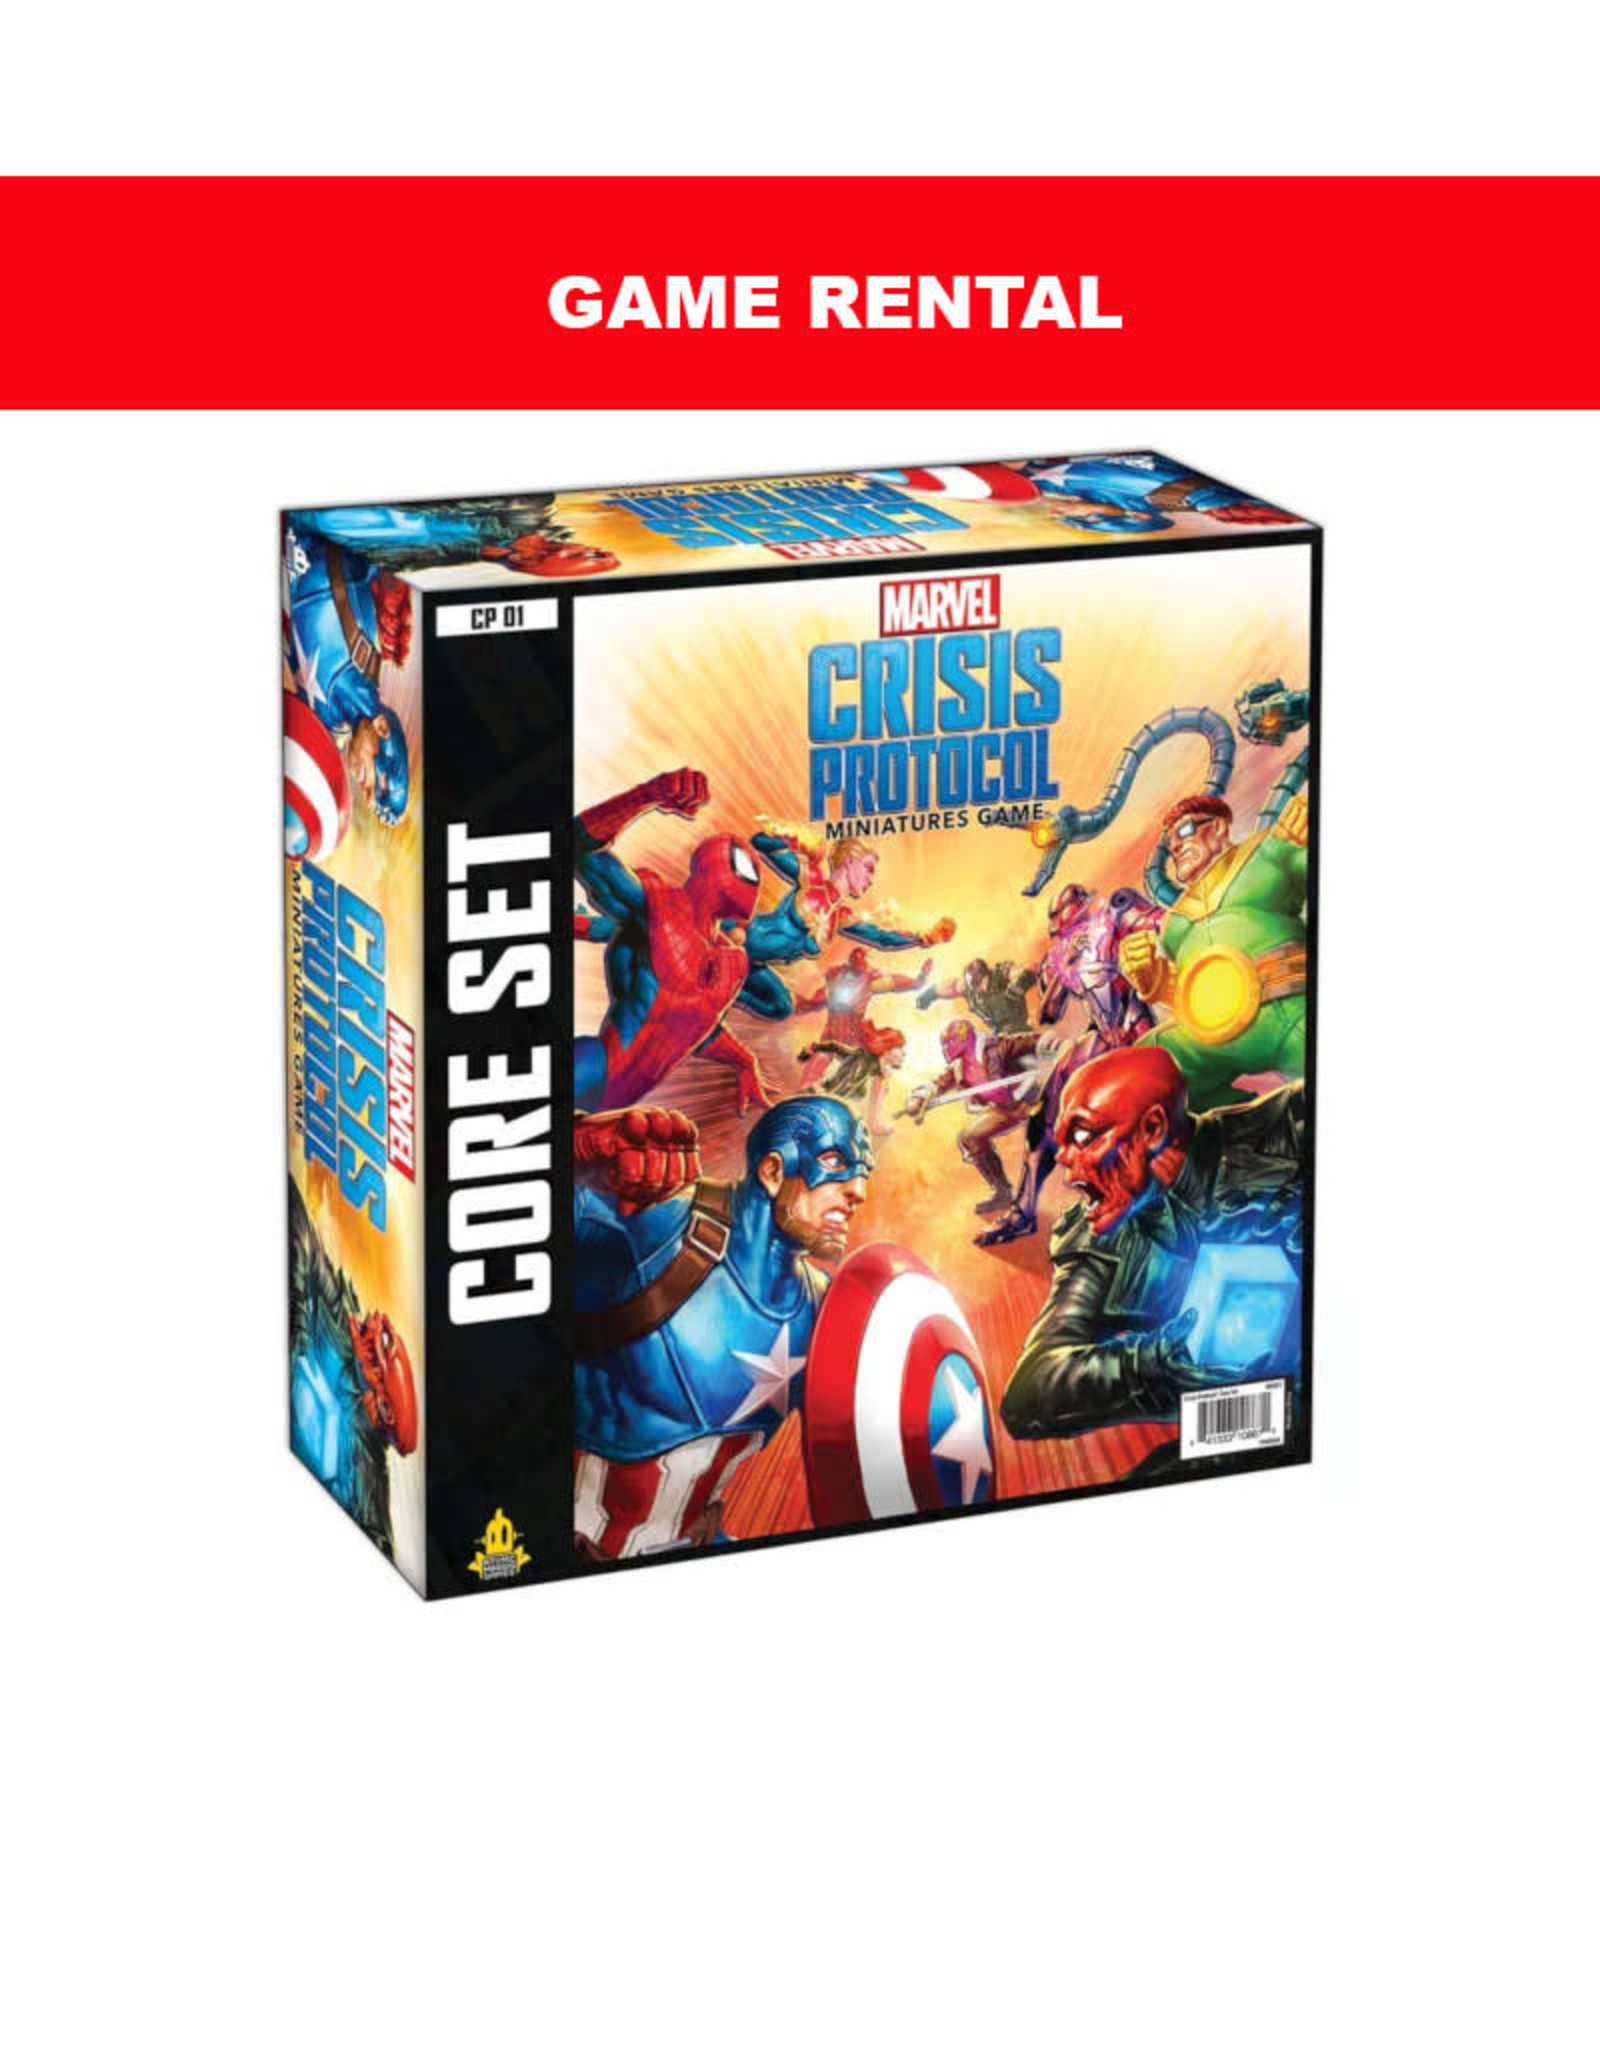 (RENT) Marvel Crisis Protocol For a Day. Love It! Buy It!